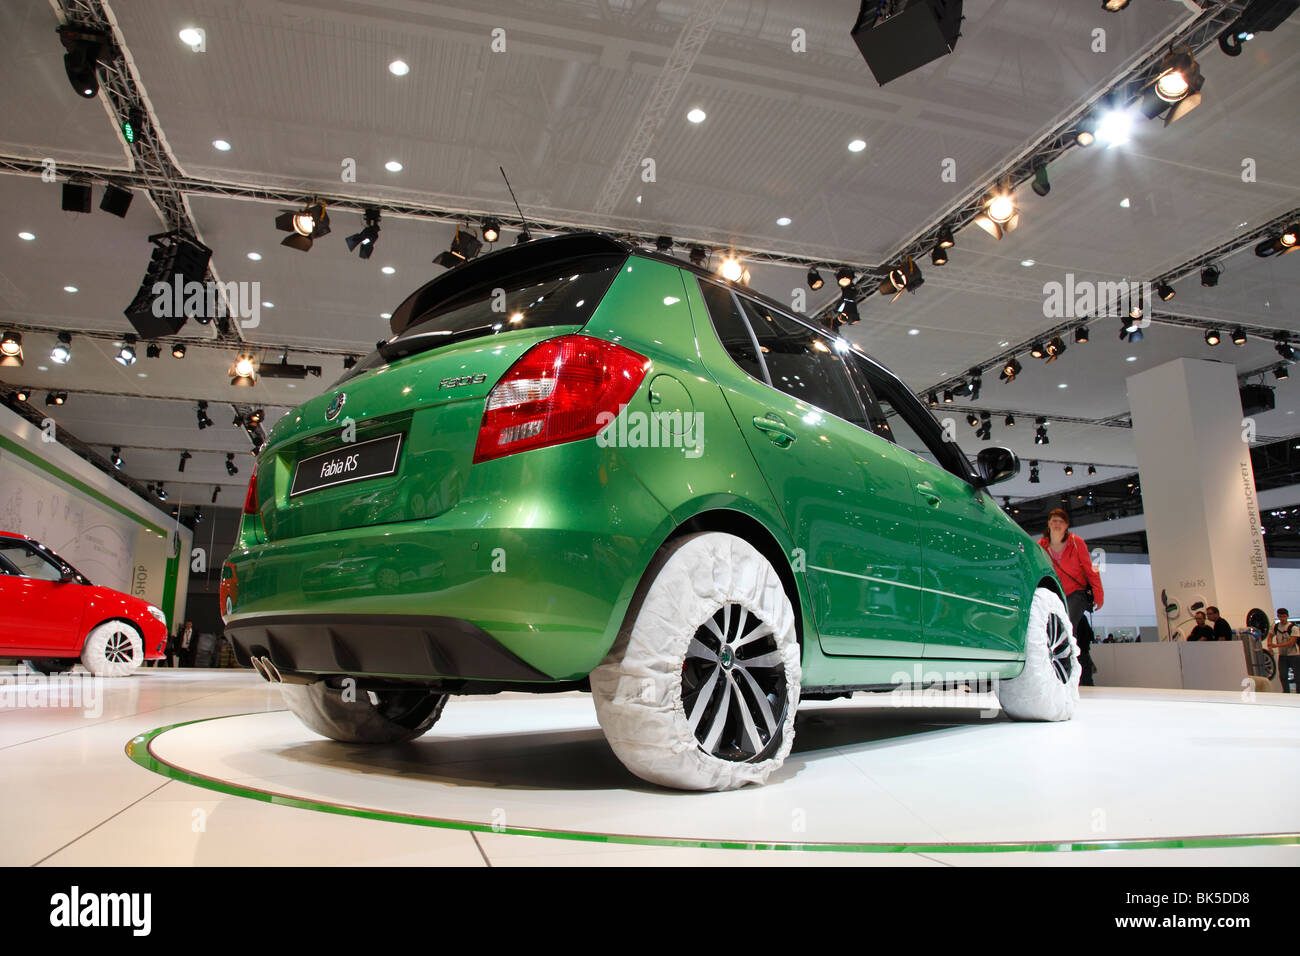 SKODA Fabia RS at the Auto Mobil International (AMI) - Motor Show 2010 in Leipzig, Germany - Stock Image